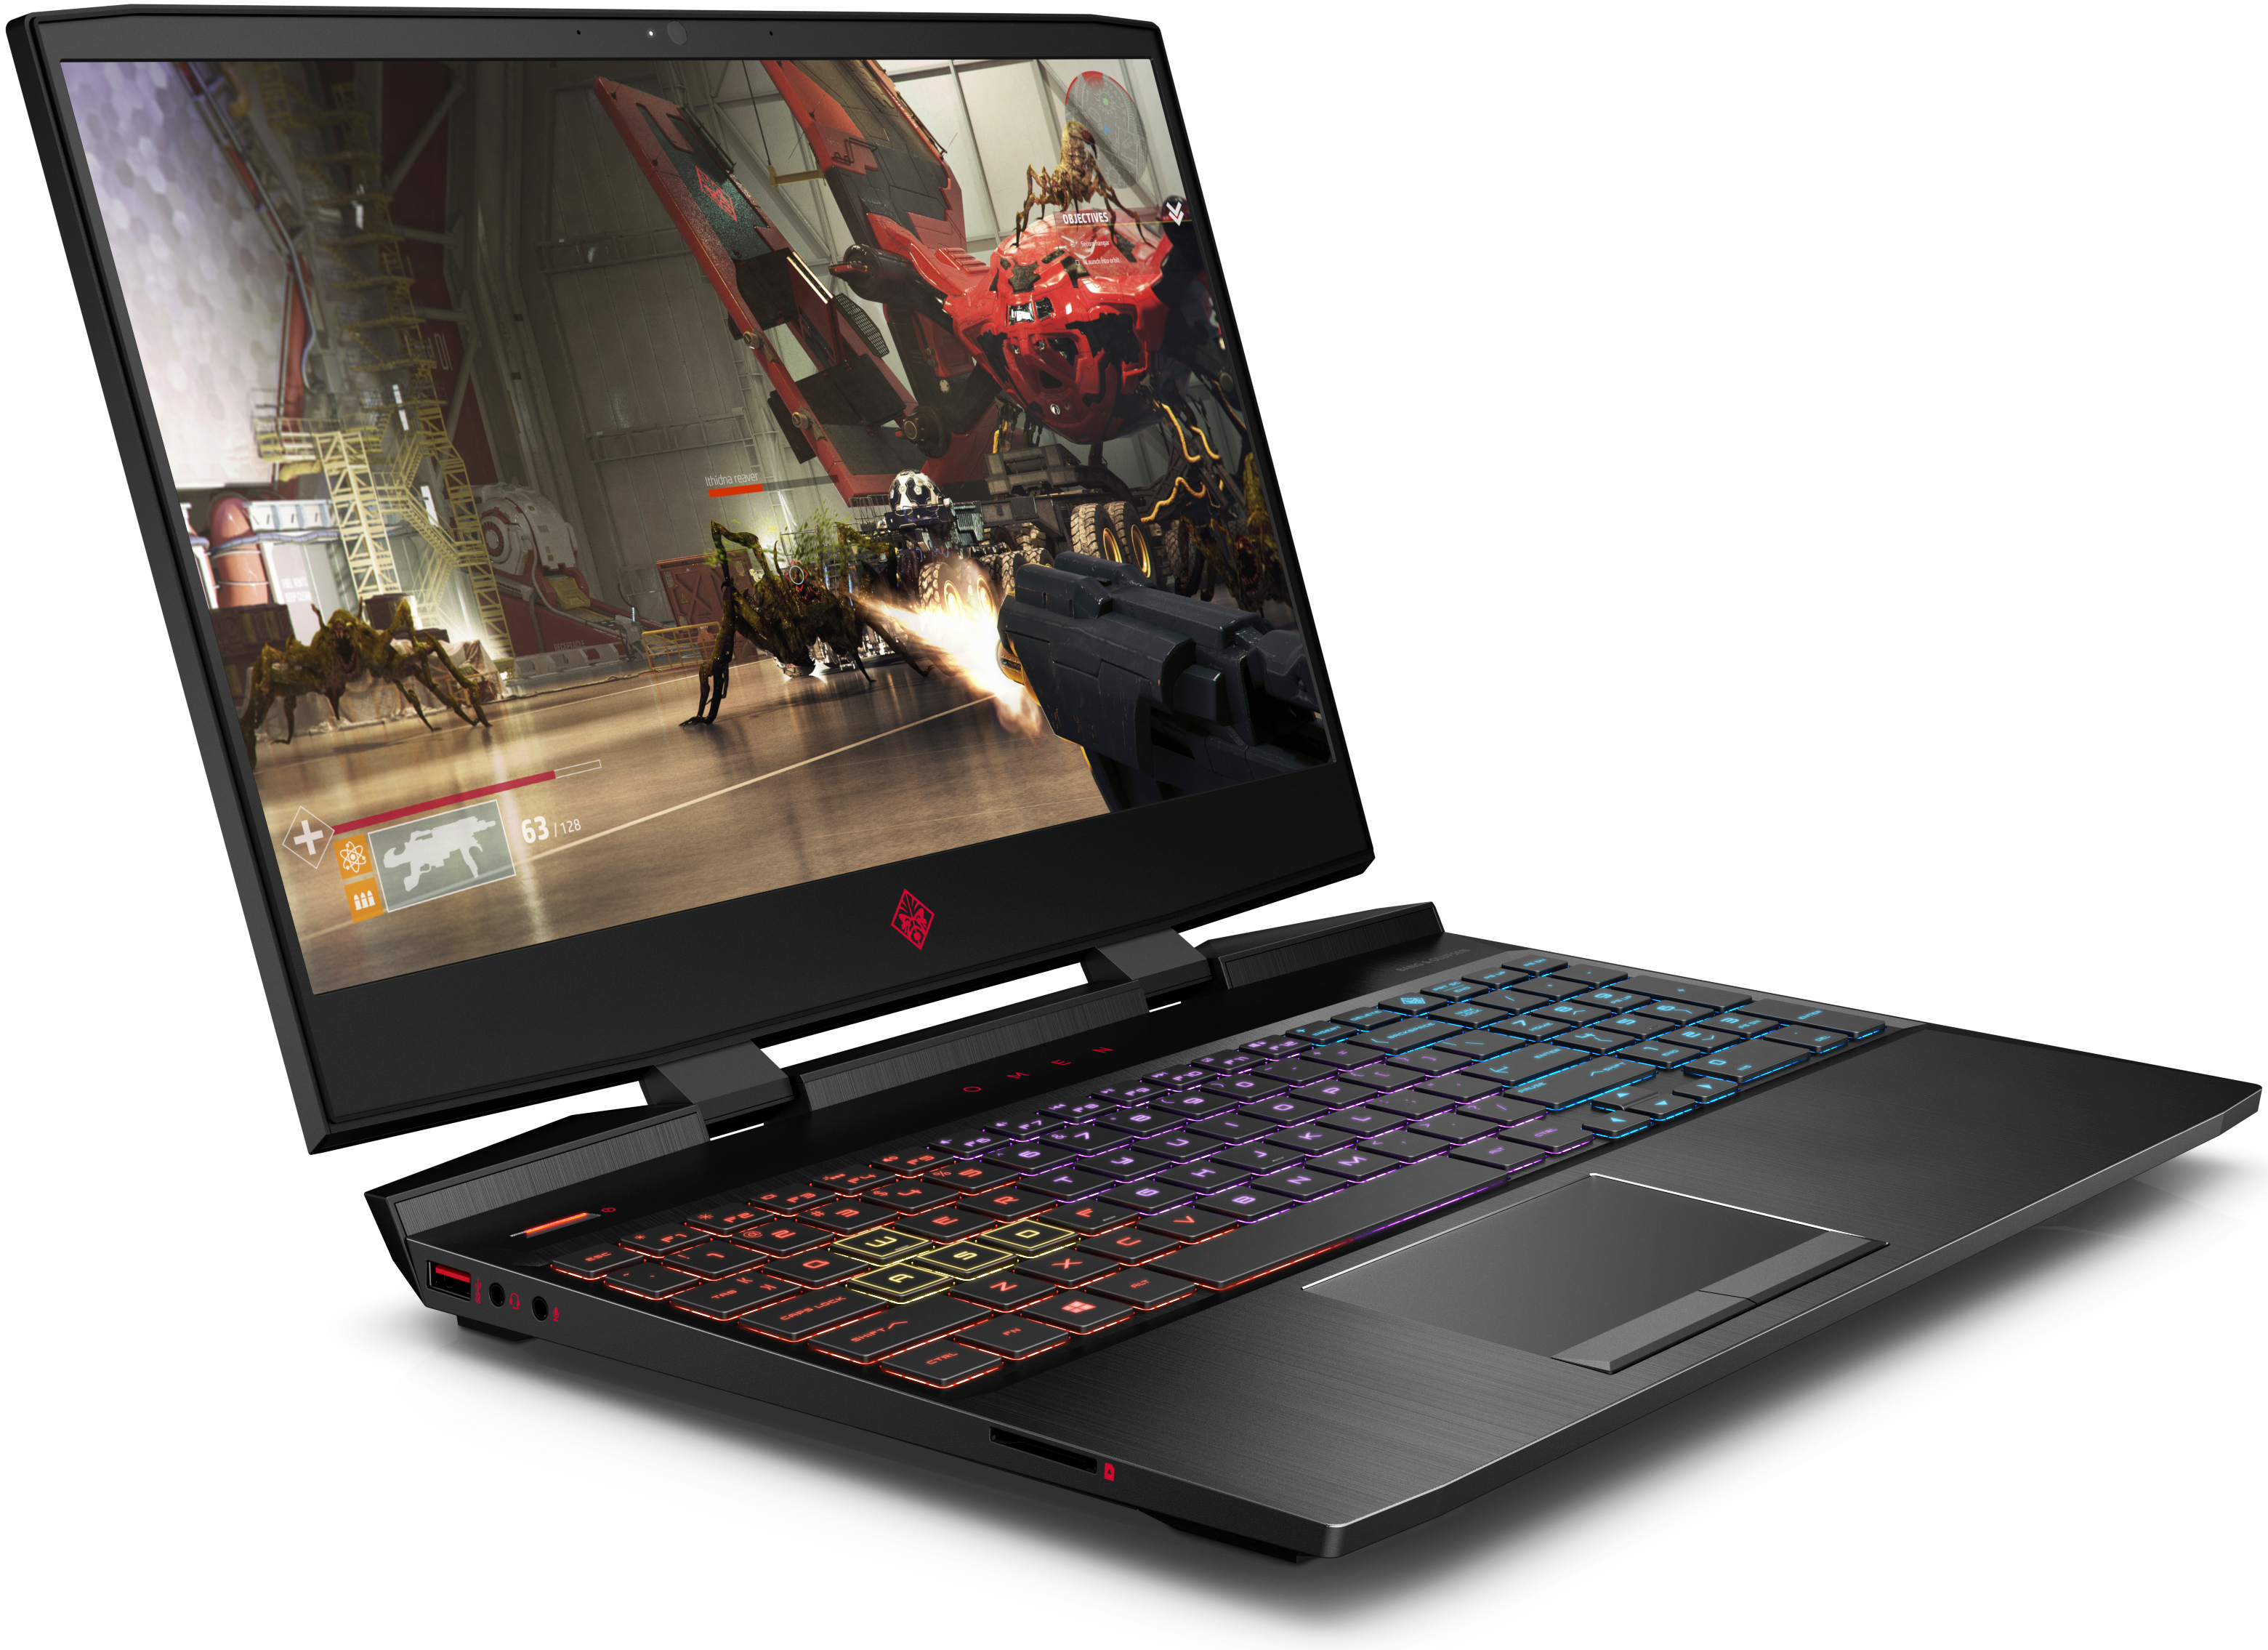 HP at CES 2019: OMEN 15 Laptop Gets 240 Hz Monitor, New